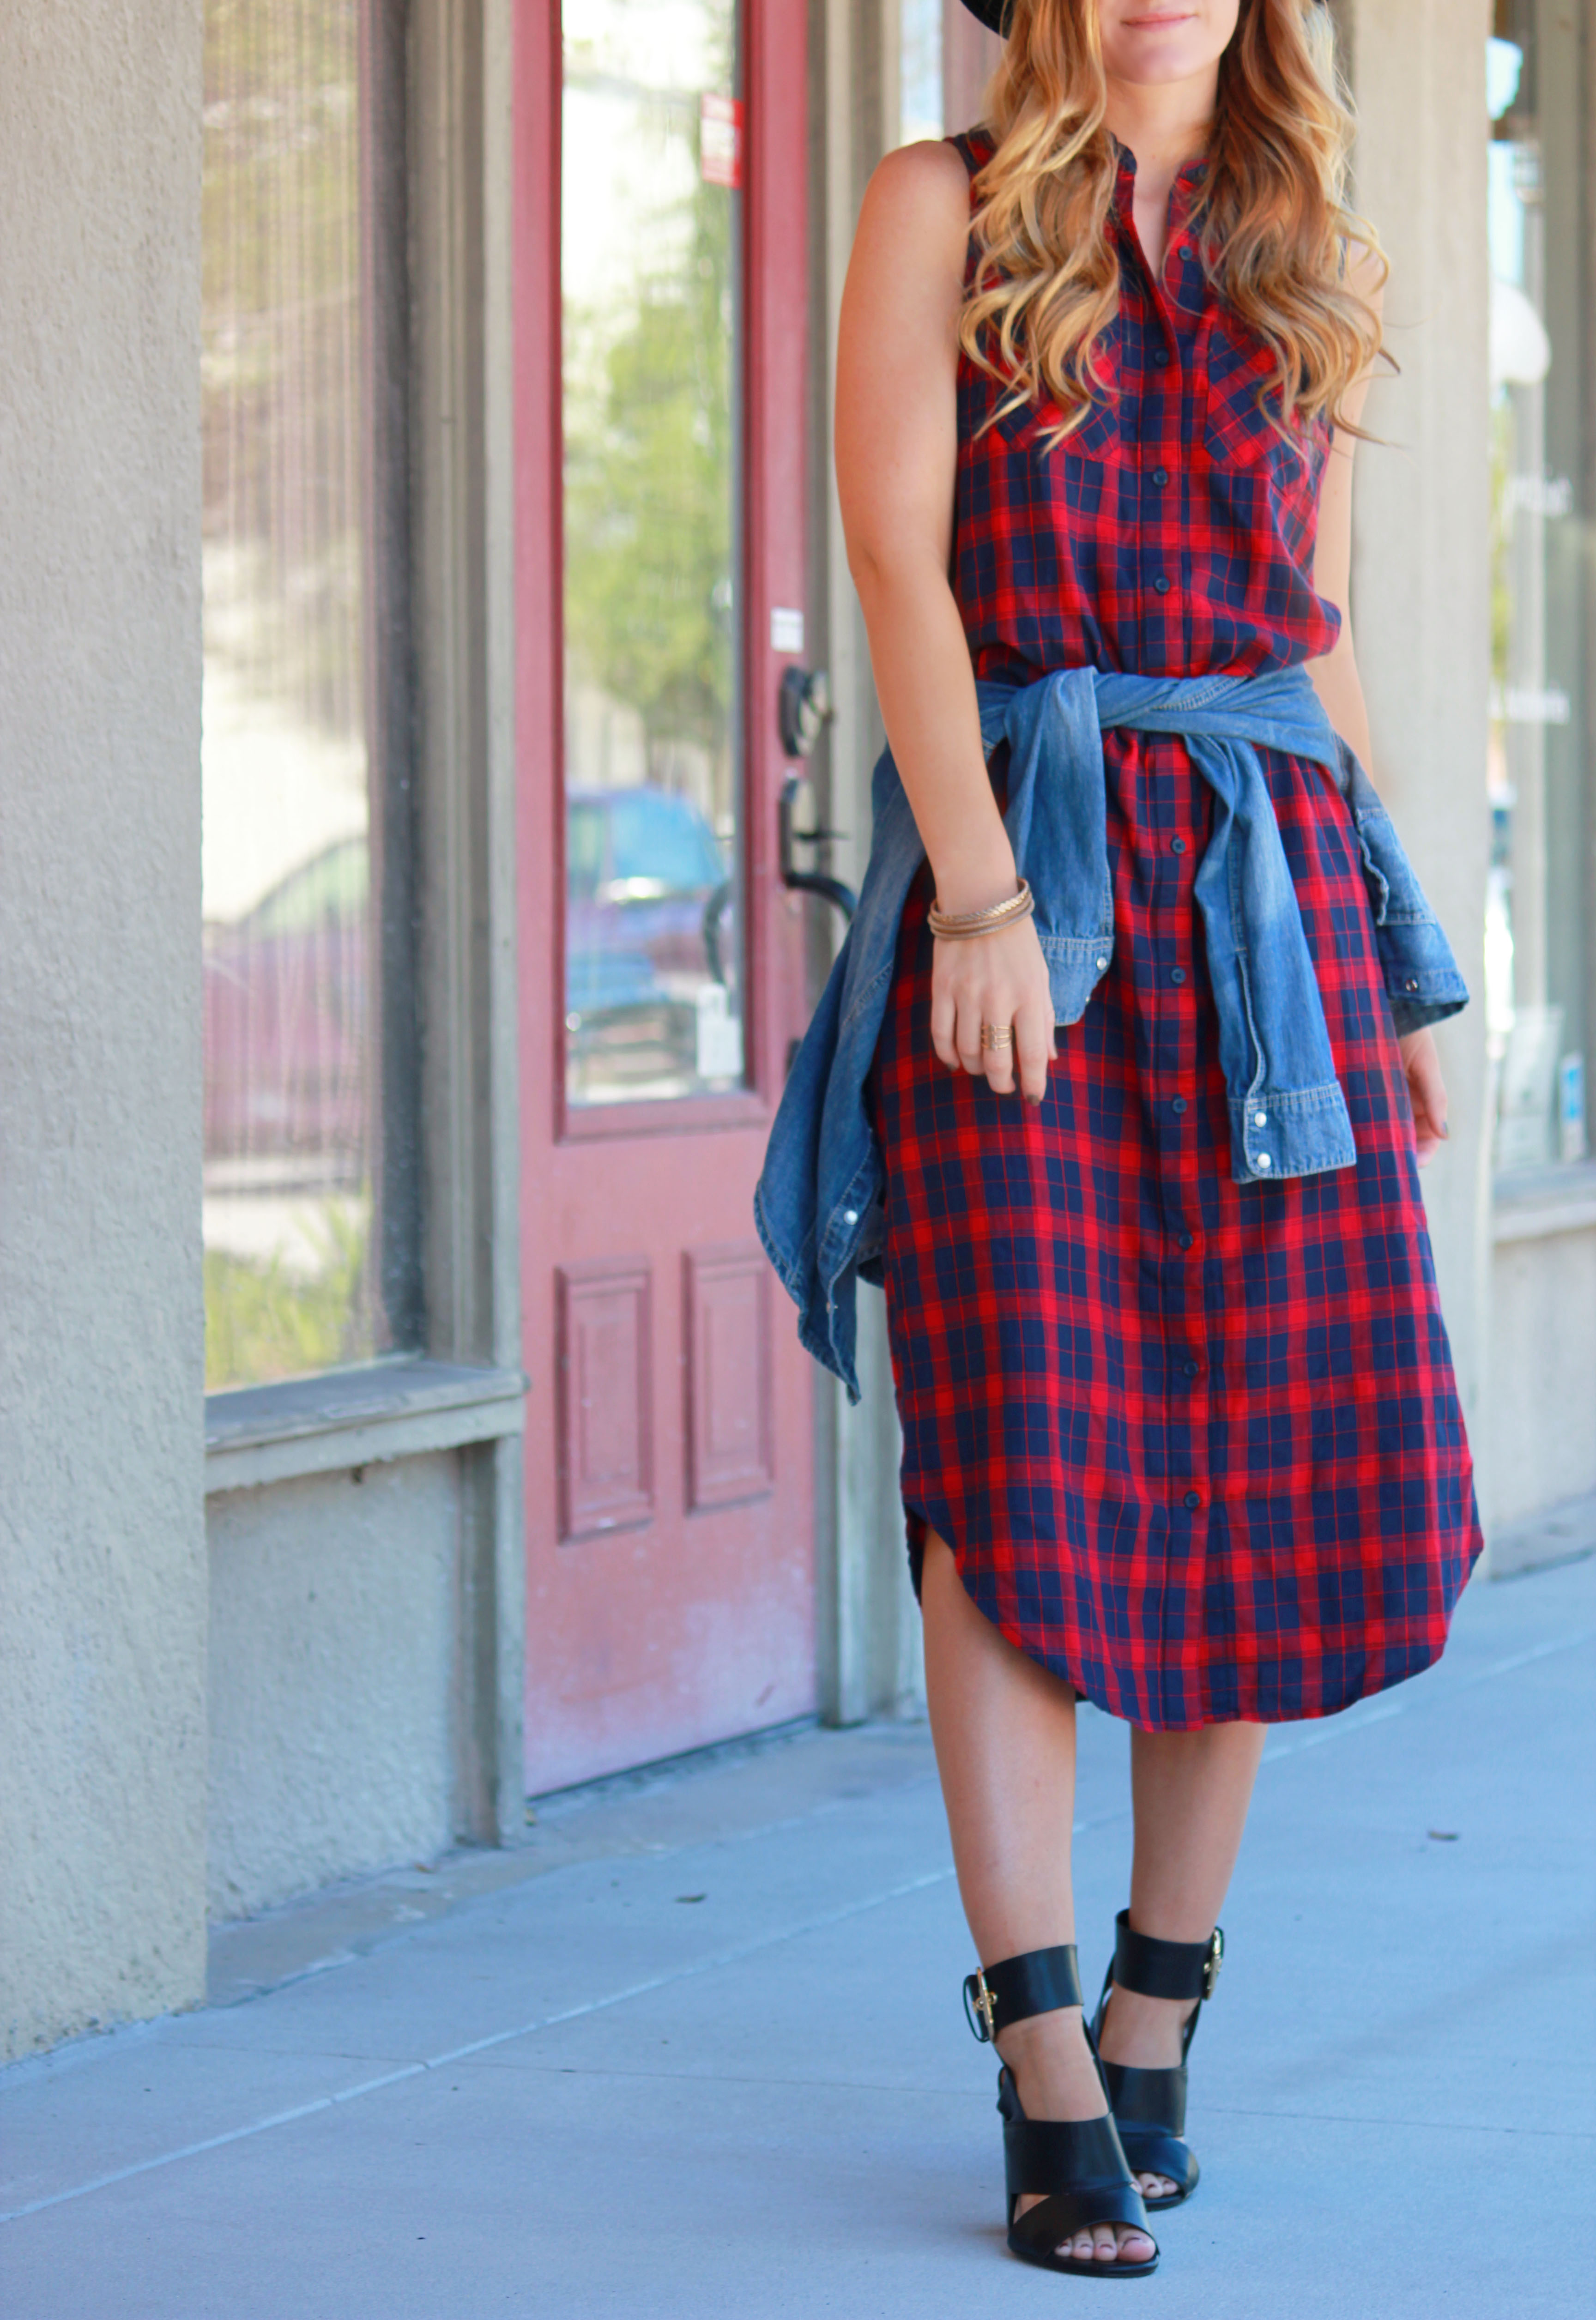 florida/ orlando fashion blogger styling grunge forever 21 plaid dress with chambray shirt around waist for a casual fall outfit